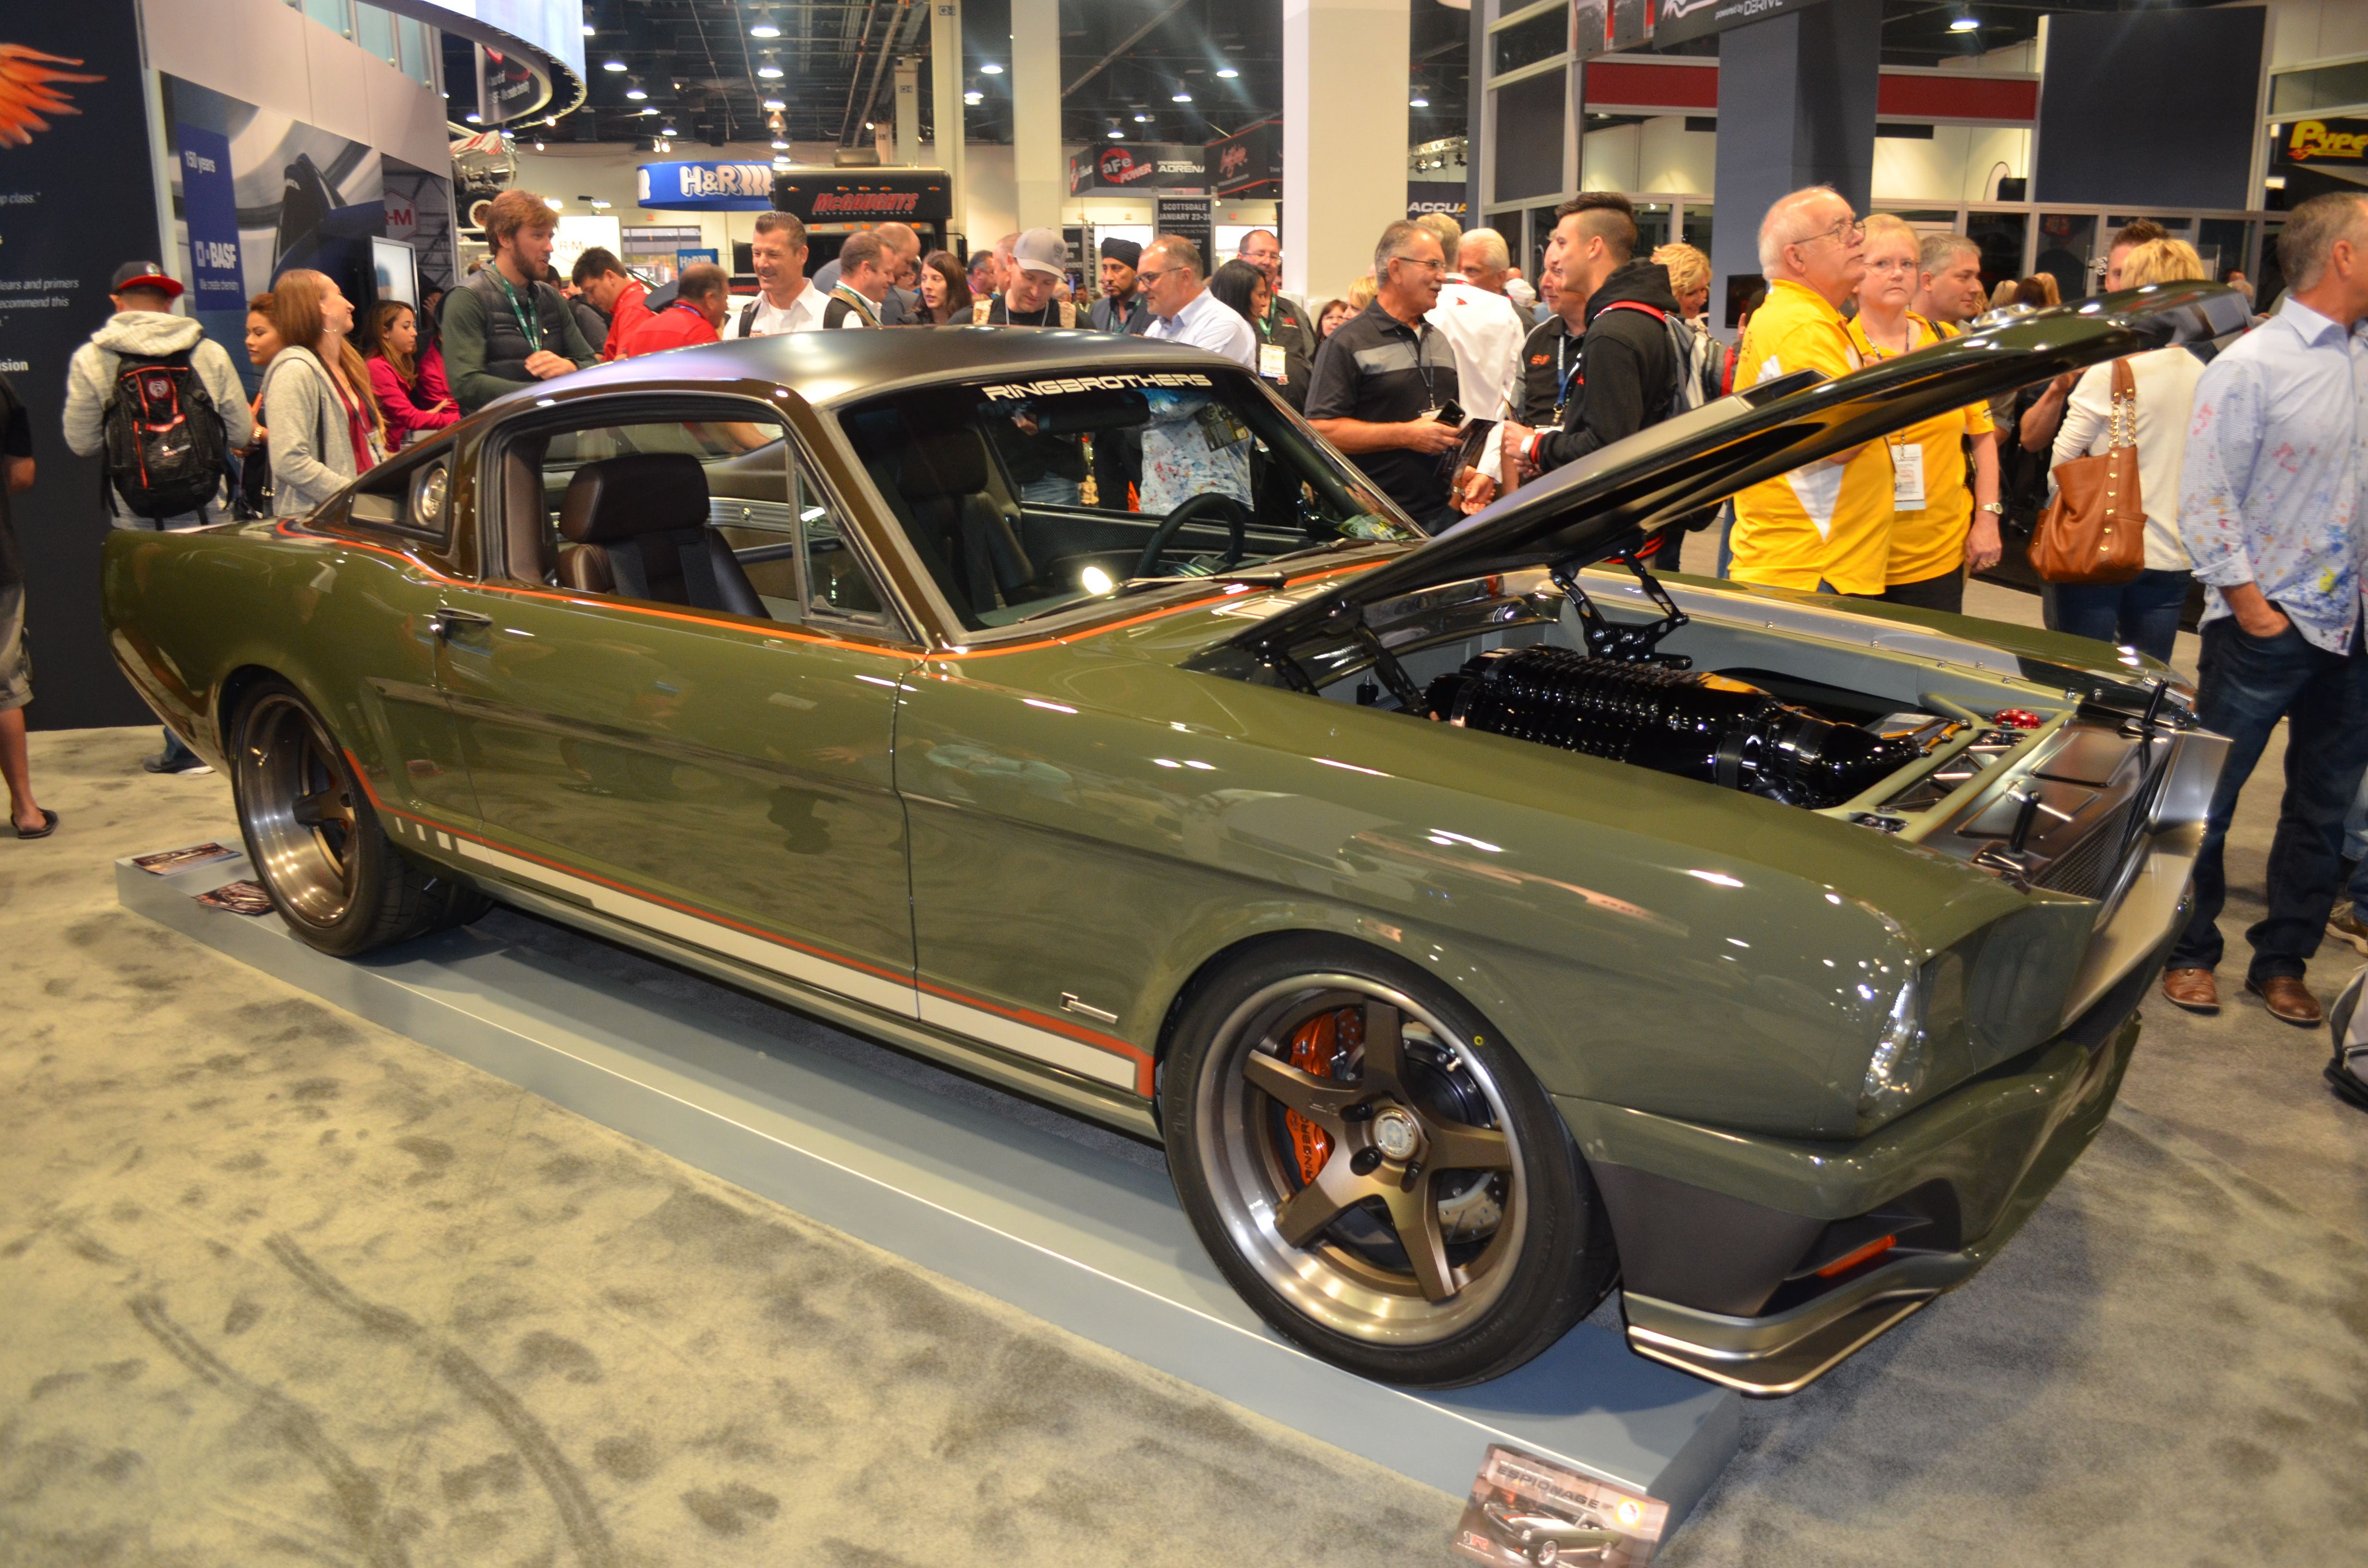 Ringbrothers Unveils Latest Creation All Carbon Fiber 1965 Mustang Fastback Mustang Fastback 1965 Mustang Mustang